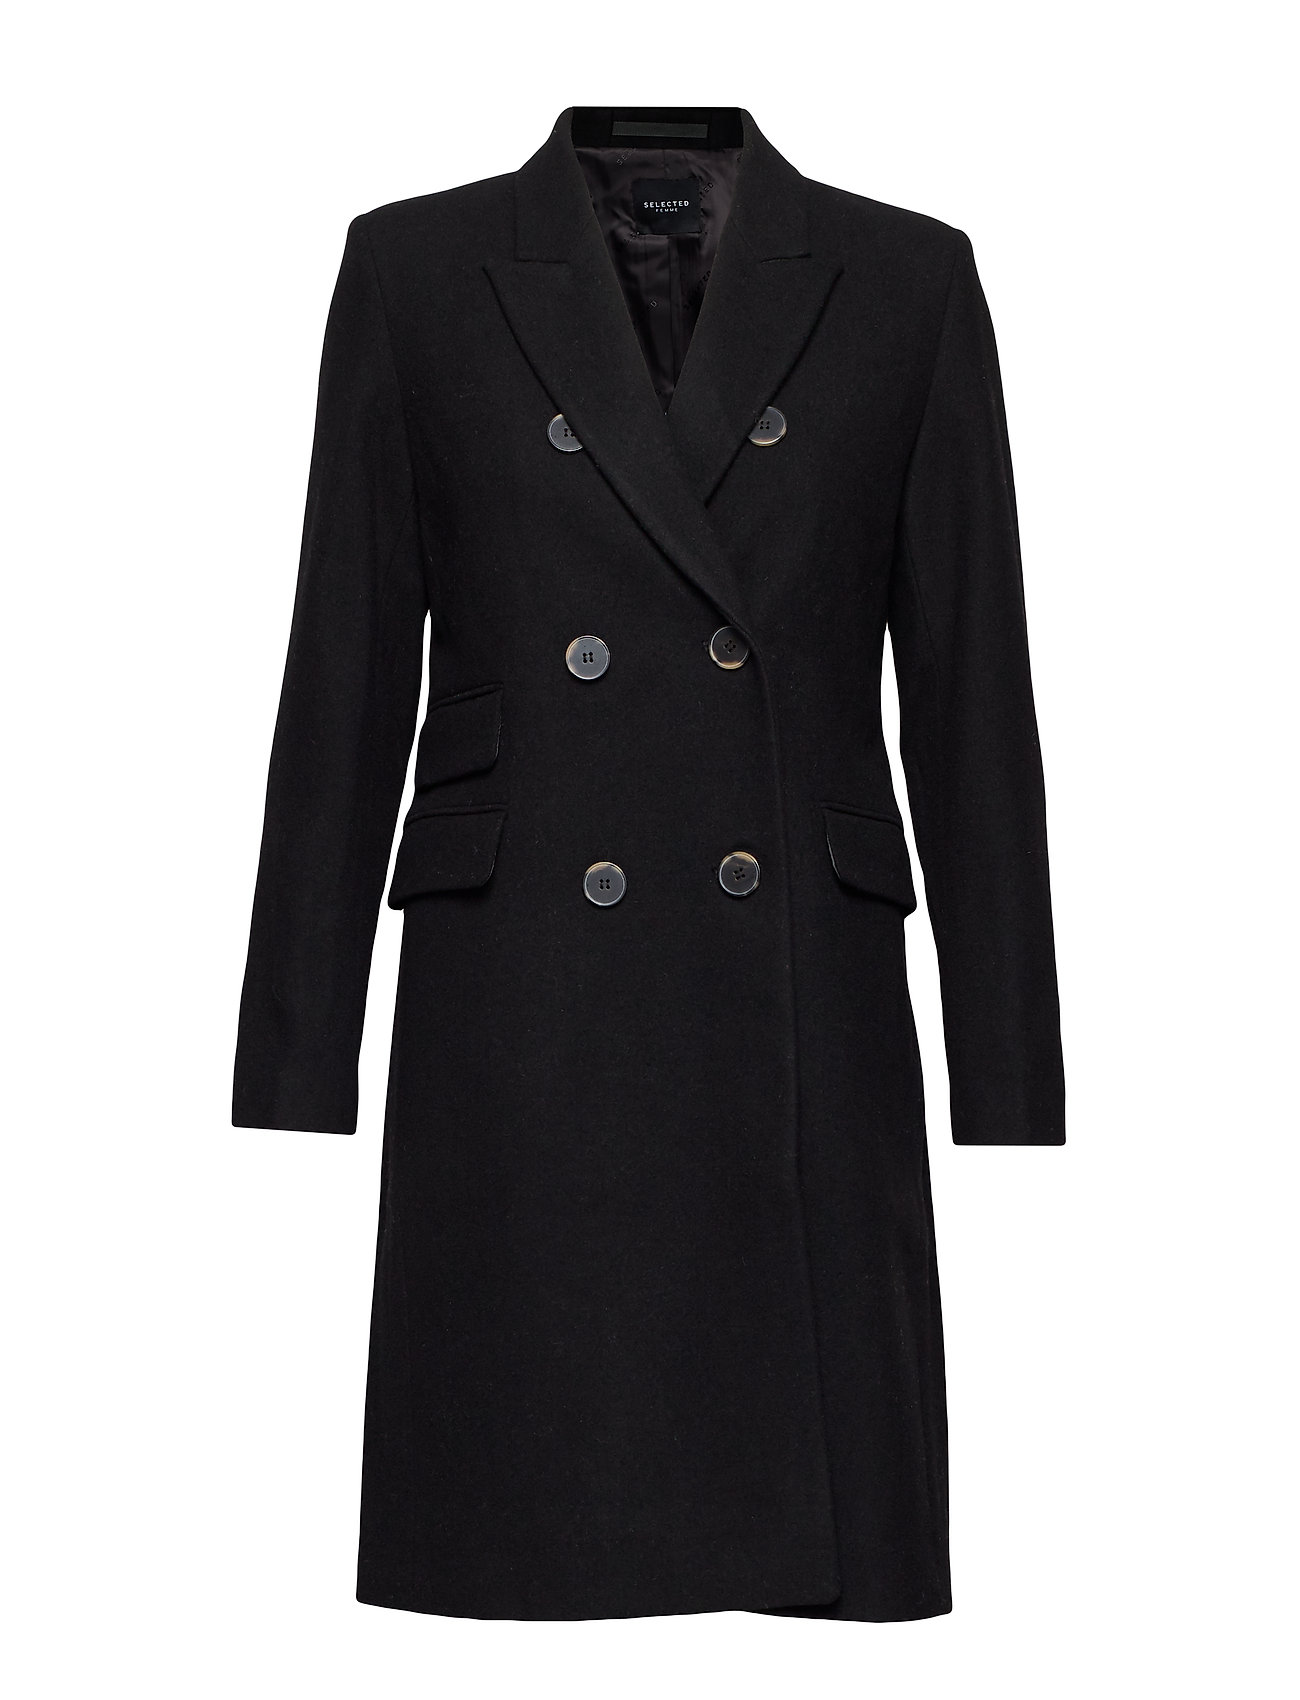 Selected Femme SLFBINA WOOL COAT B CAMP - BLACK